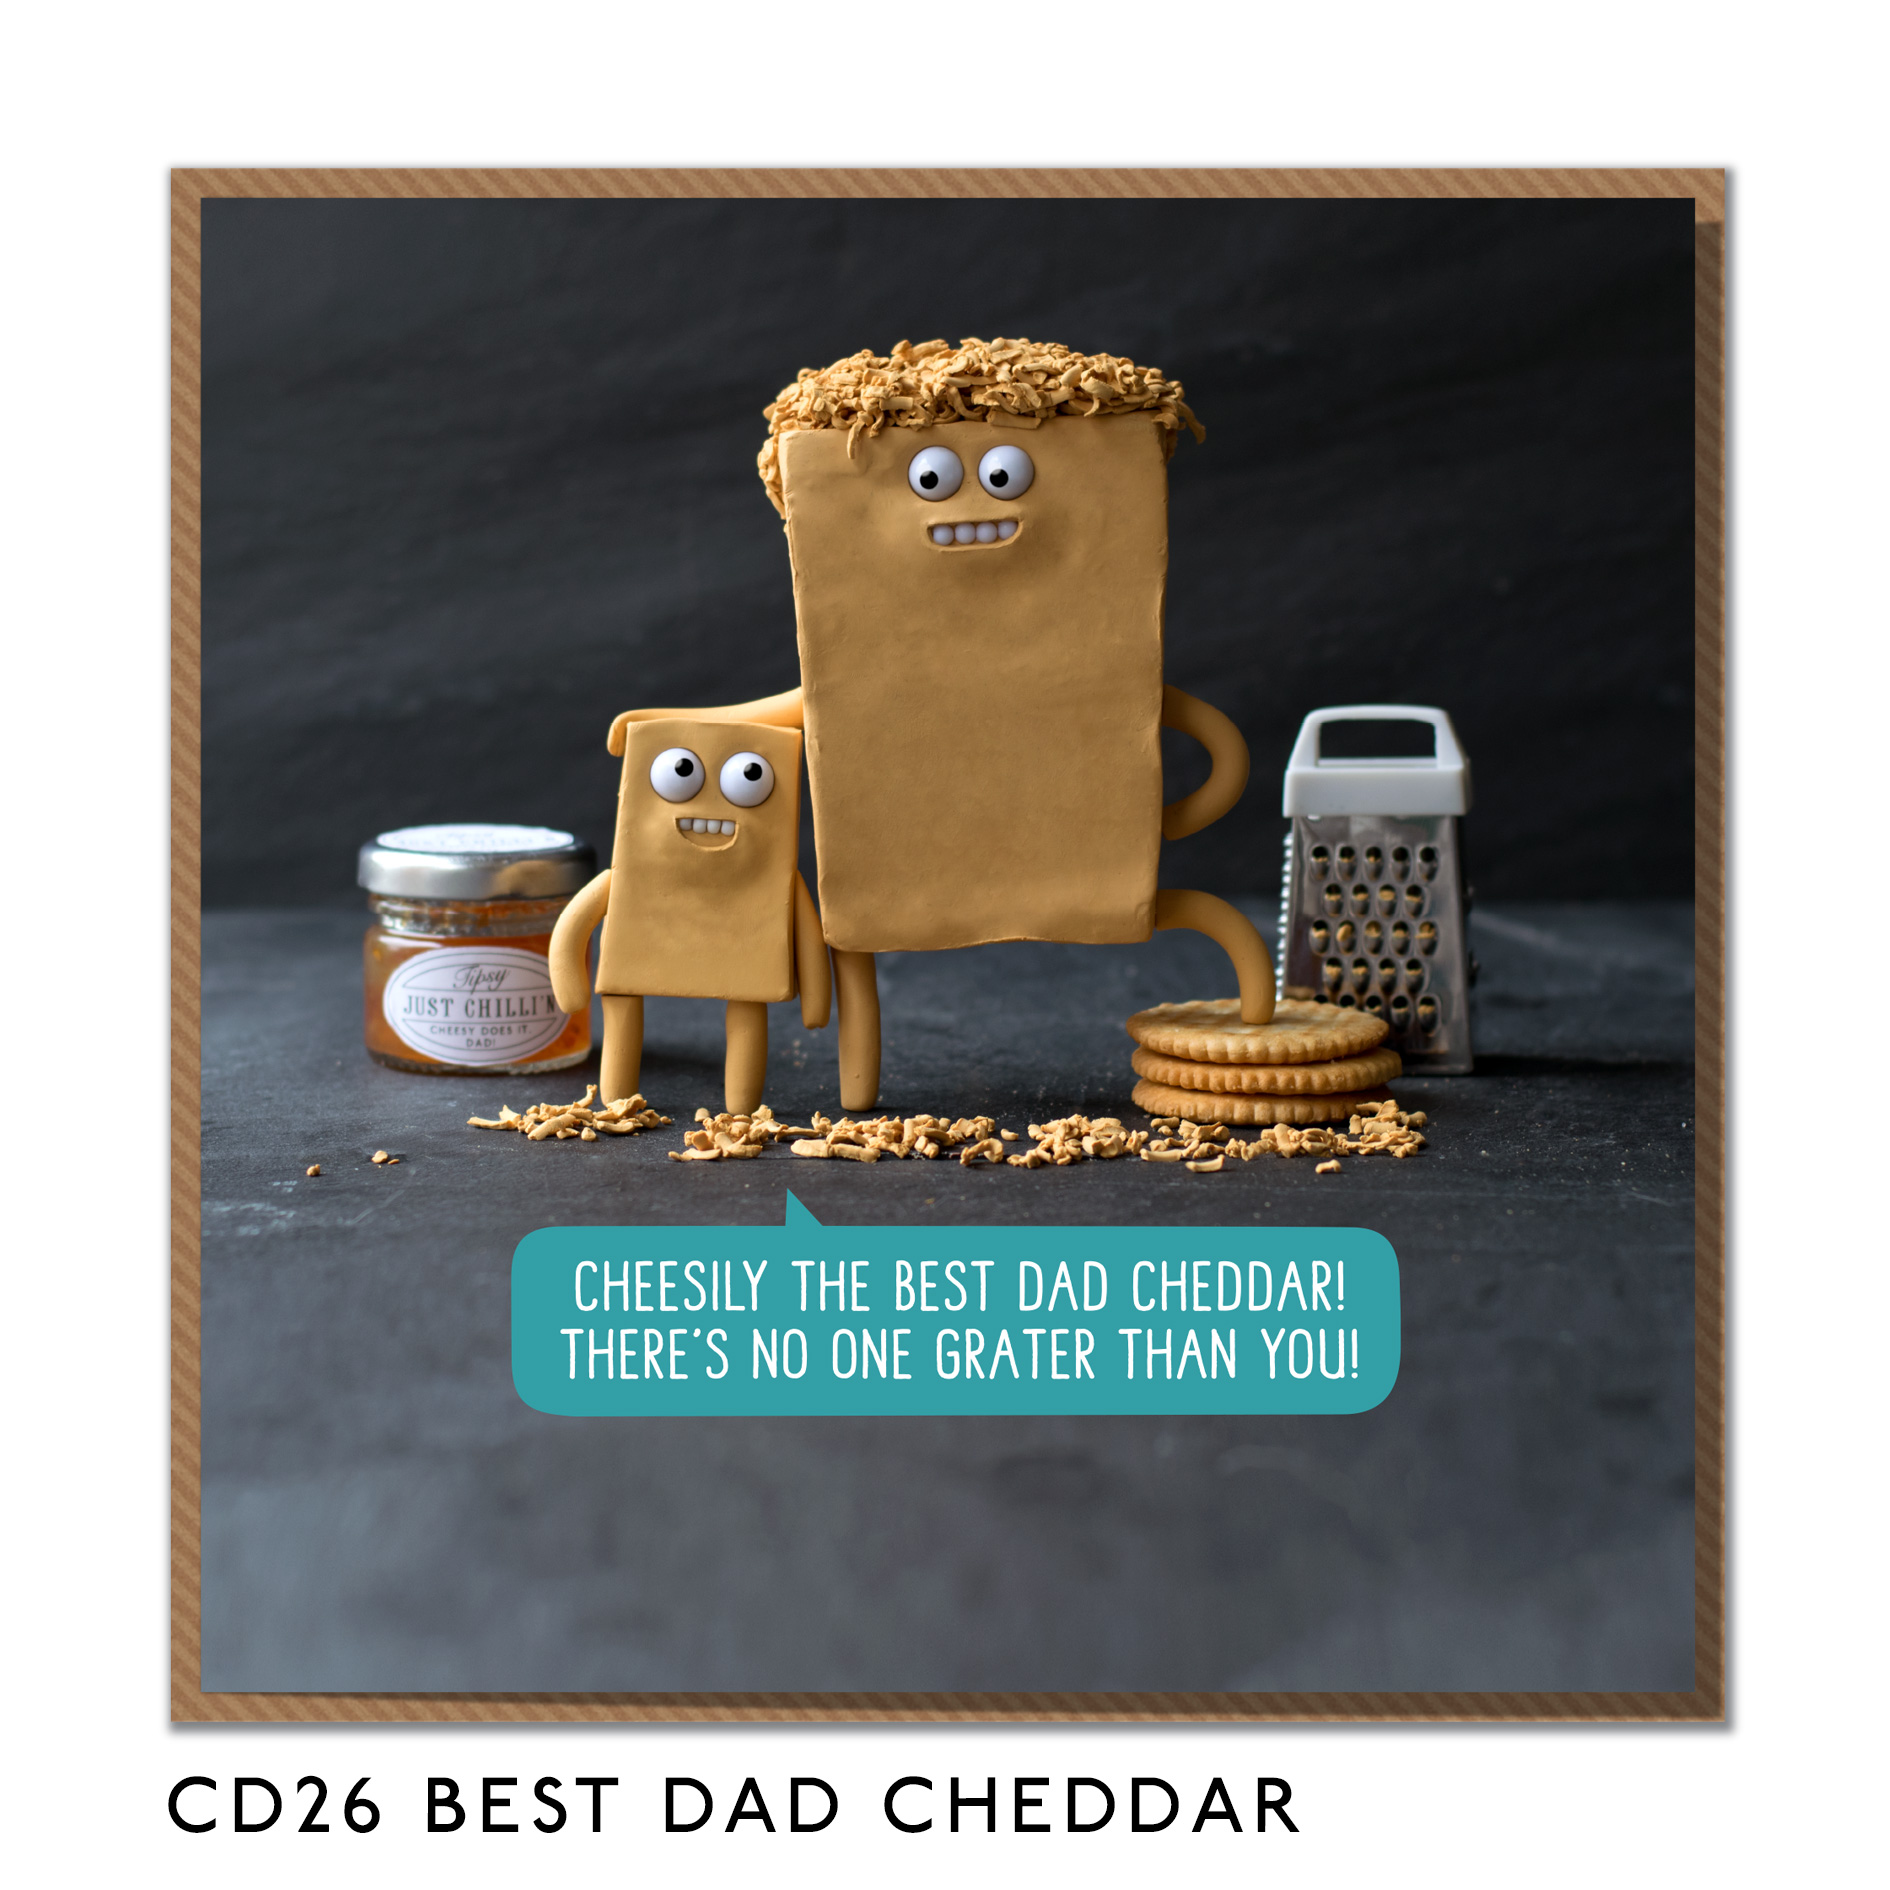 CD26-BEST-DAD-CHEDDAR.jpg